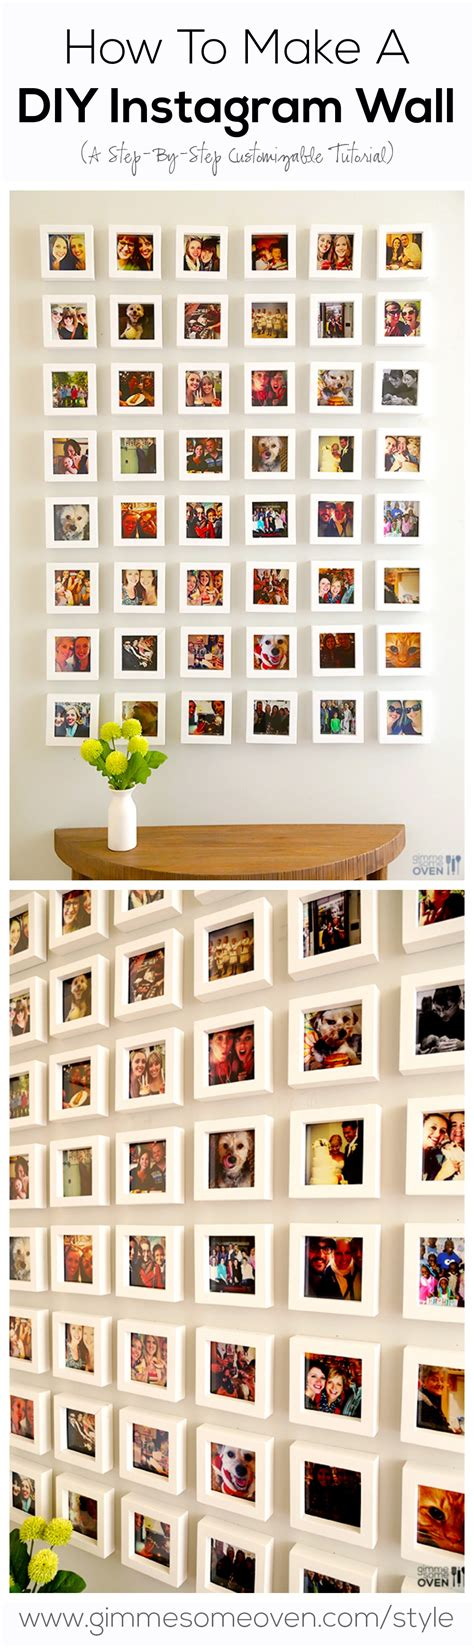 instagram gallery tutorial a step by step tutorial for how to turn your favorite